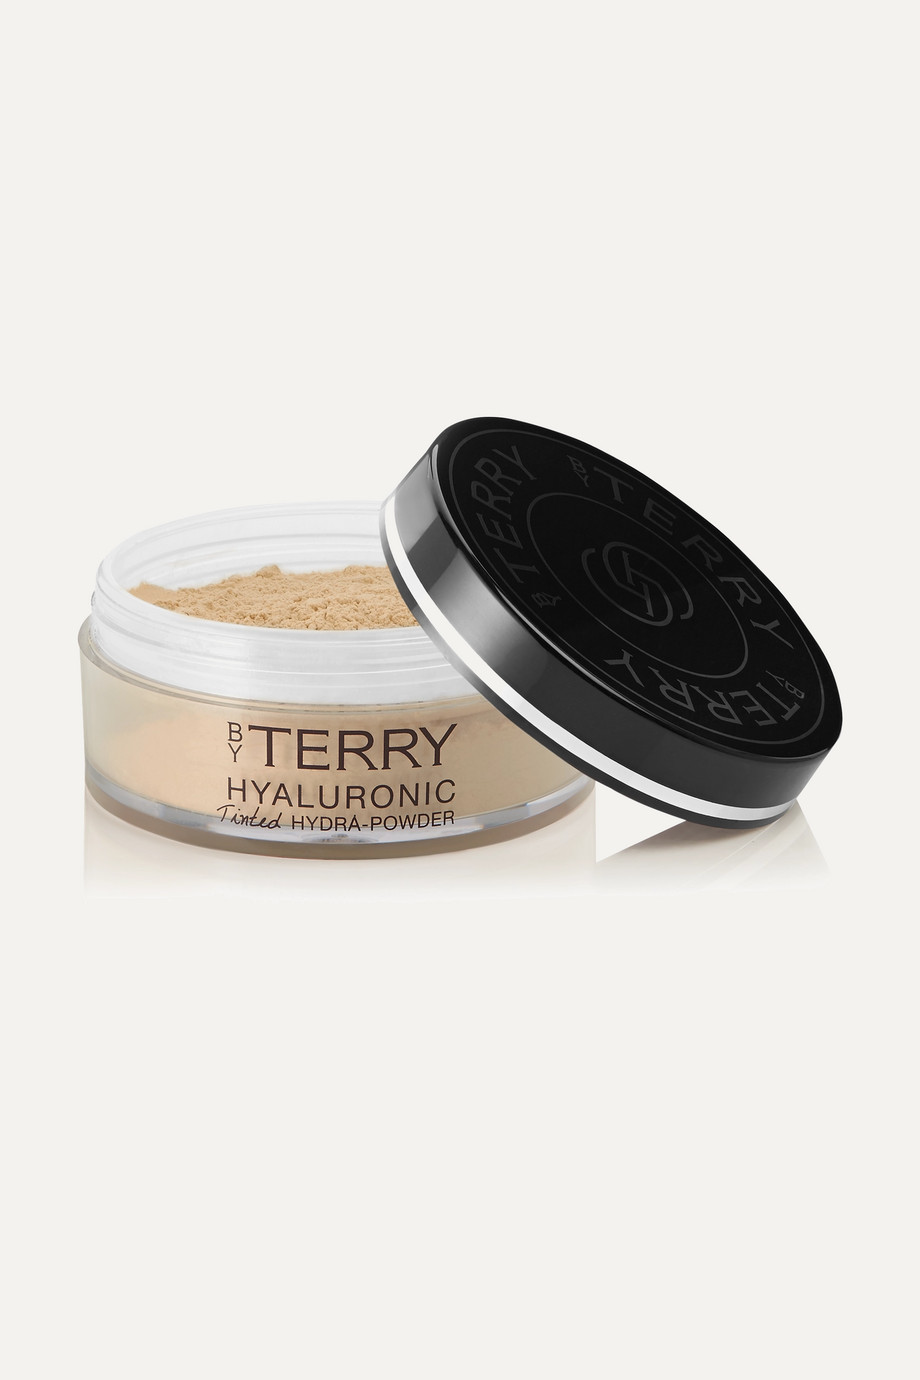 BY TERRY Hyaluronic Tinted Hydra-Powder - Fair No. 100